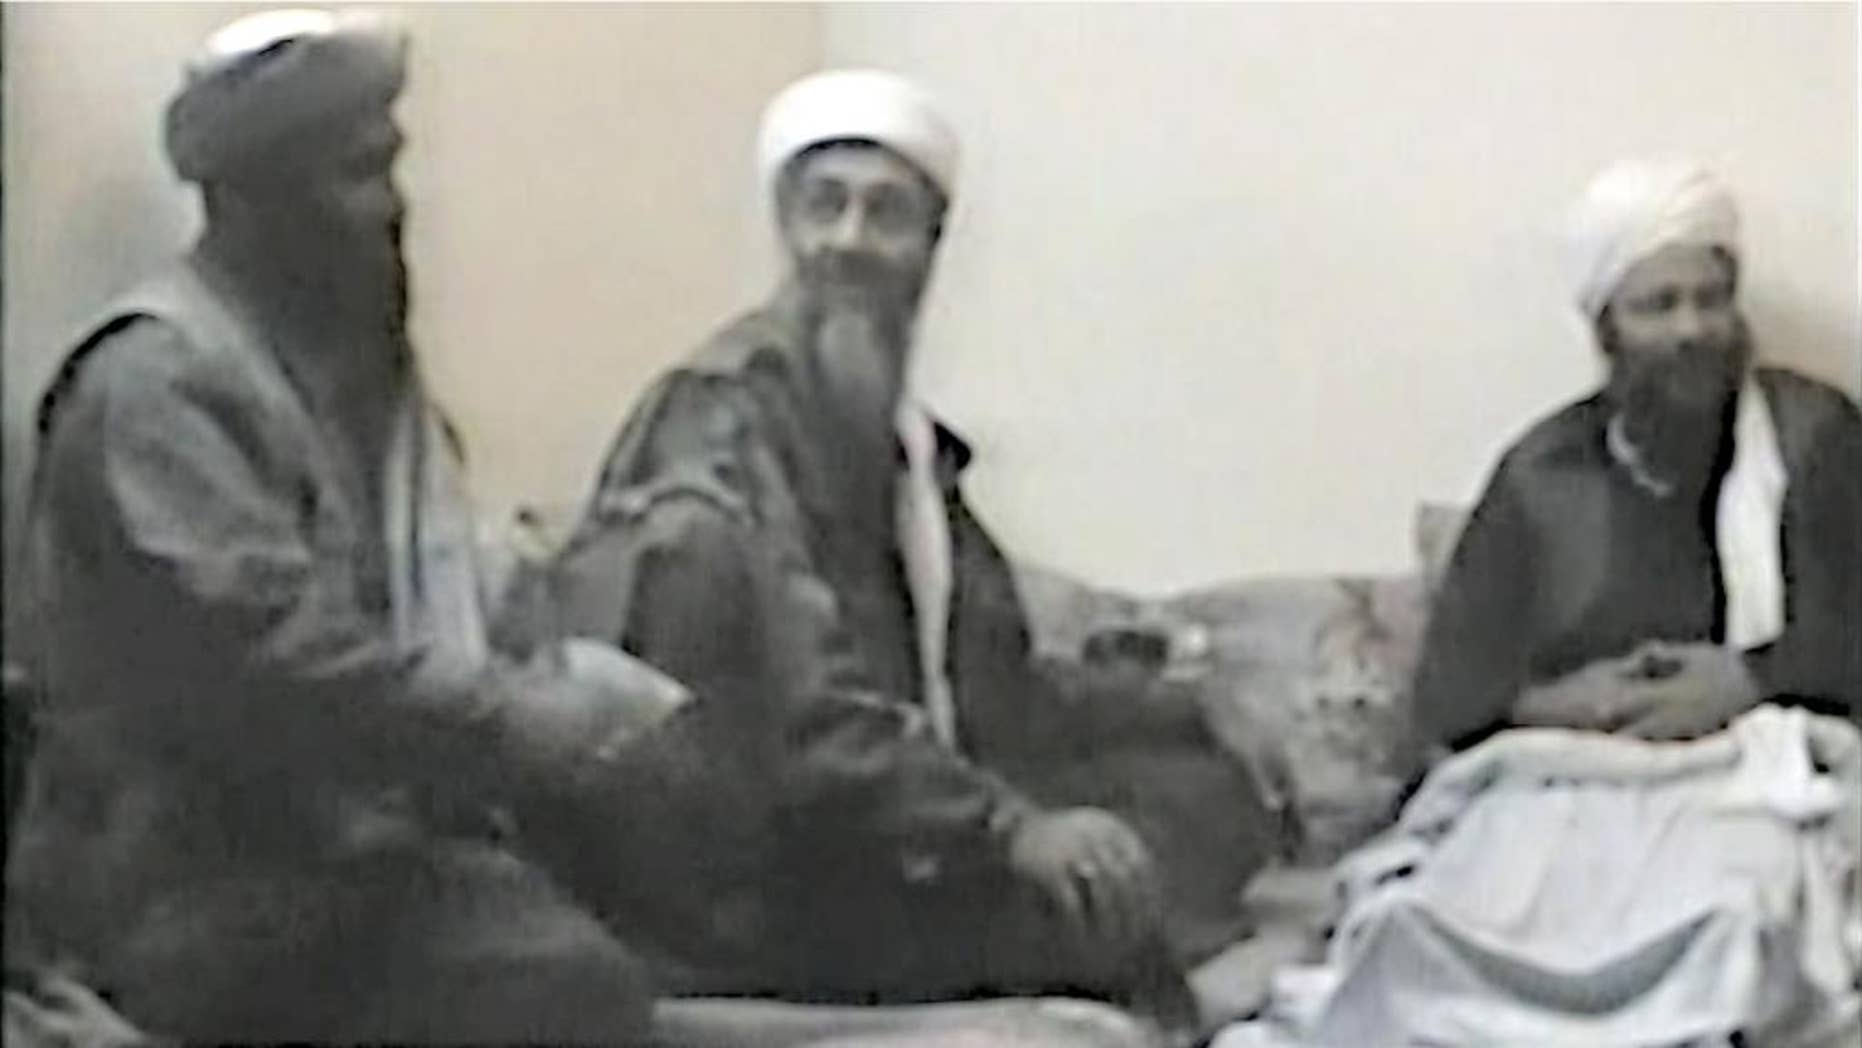 In this undated photo provided by the United States Attorney's Office for the Southern District of New York, defendant Suliman Abu Ghayth, left, joins al-Qaida founder Osama Bin Laden, center, and an unidentified man somewhere in Afghanistan. Abu Ghayth, Osama Bin Laden's son-in-law, is being tried in New York for his role as a recruiter and motivational speaker for the terror group. (AP Photo/US Attorney's Office for the Southern District of New York)